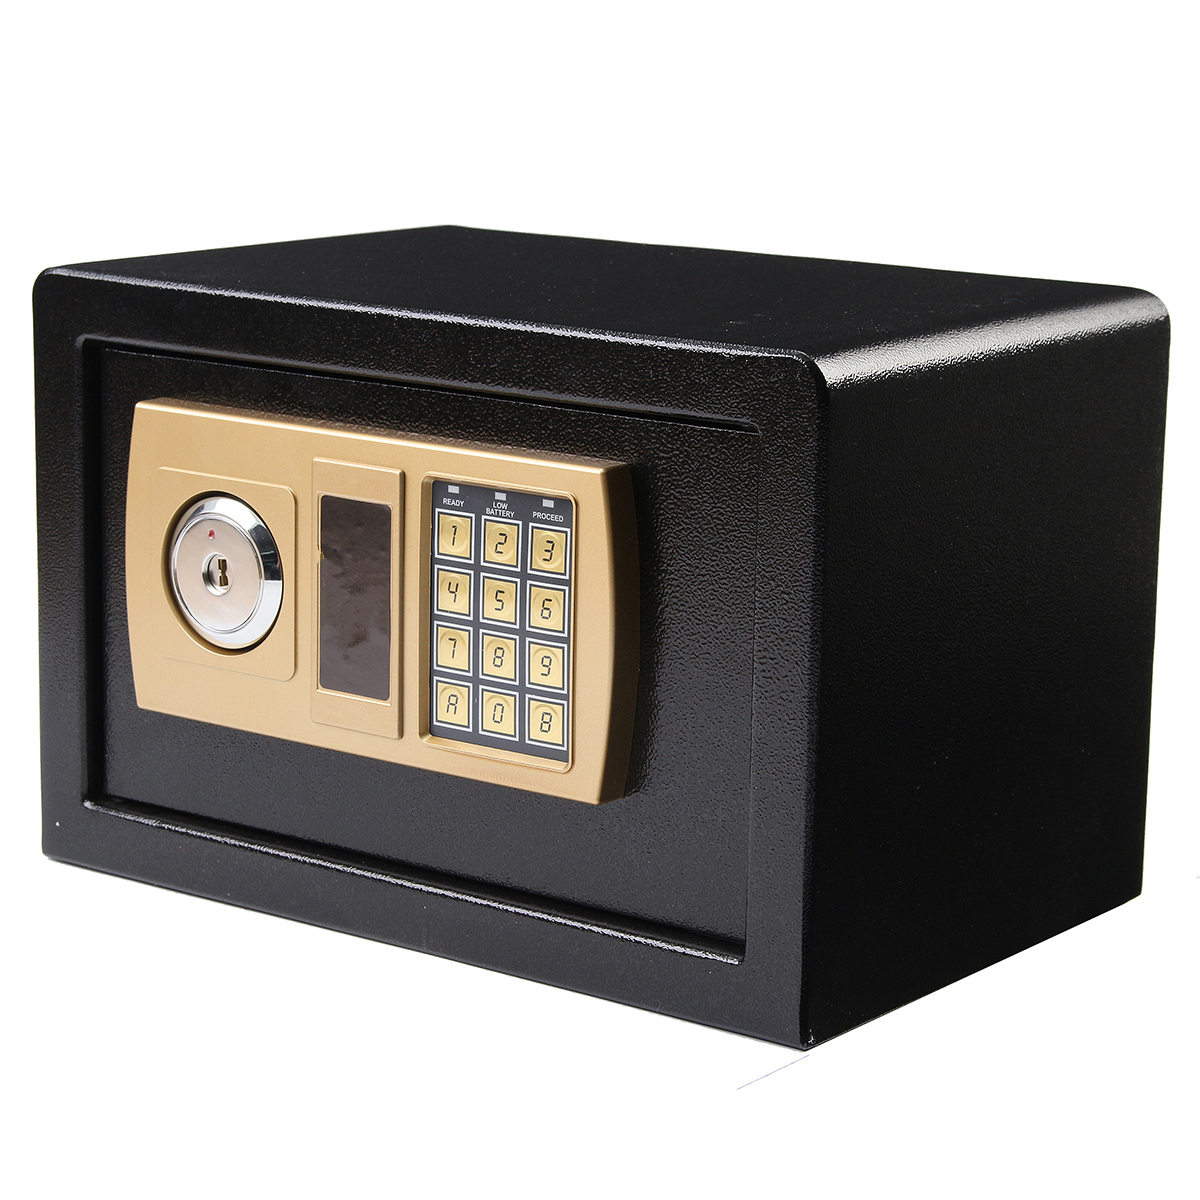 Jewelry Home Hotel Lock Keypad Black Safety Security Box 2018 Brand New Safurance Luxury Digital Depository Drop Cash Safe Box